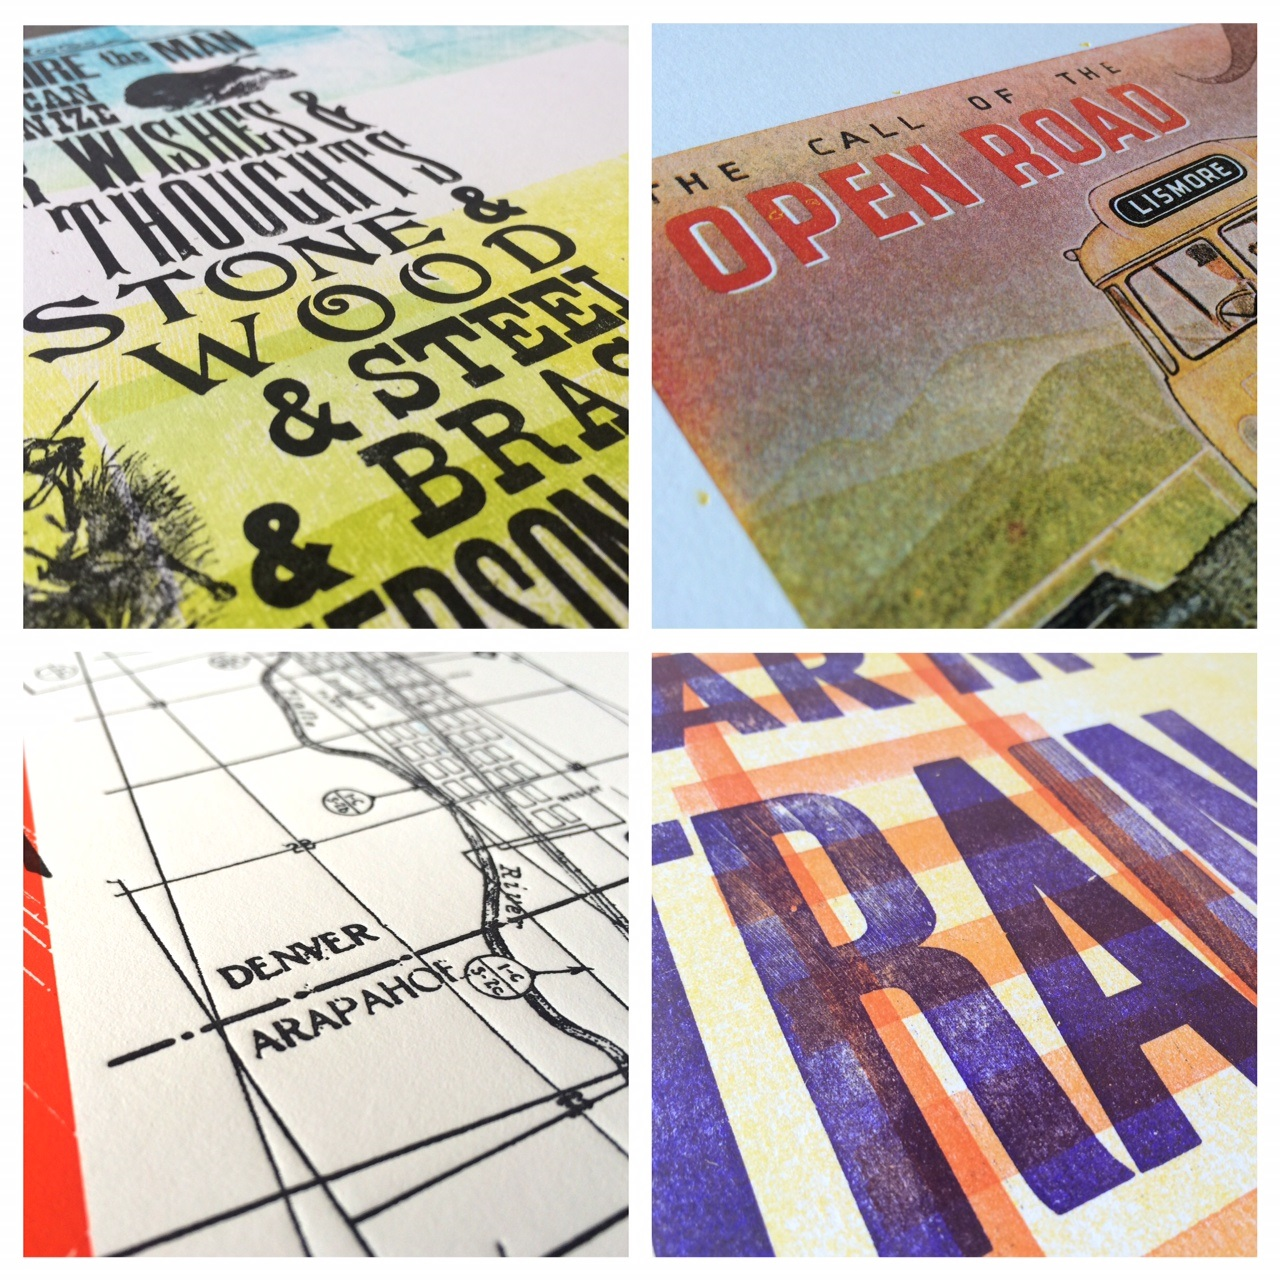 The works of 20 master letterpress printers